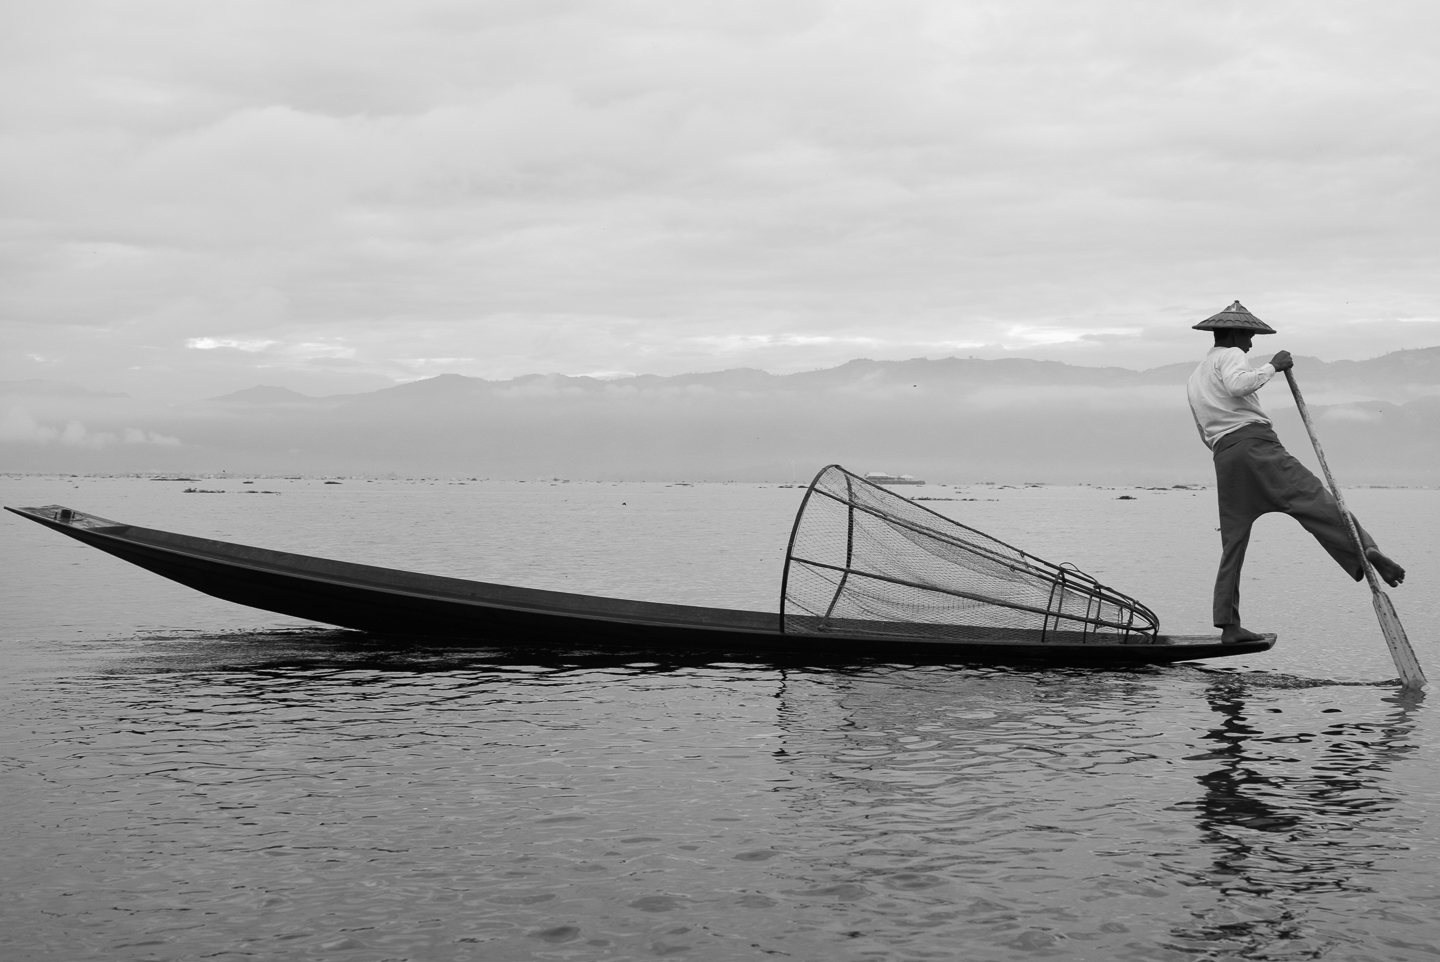 Fisherman II, Inle Lake